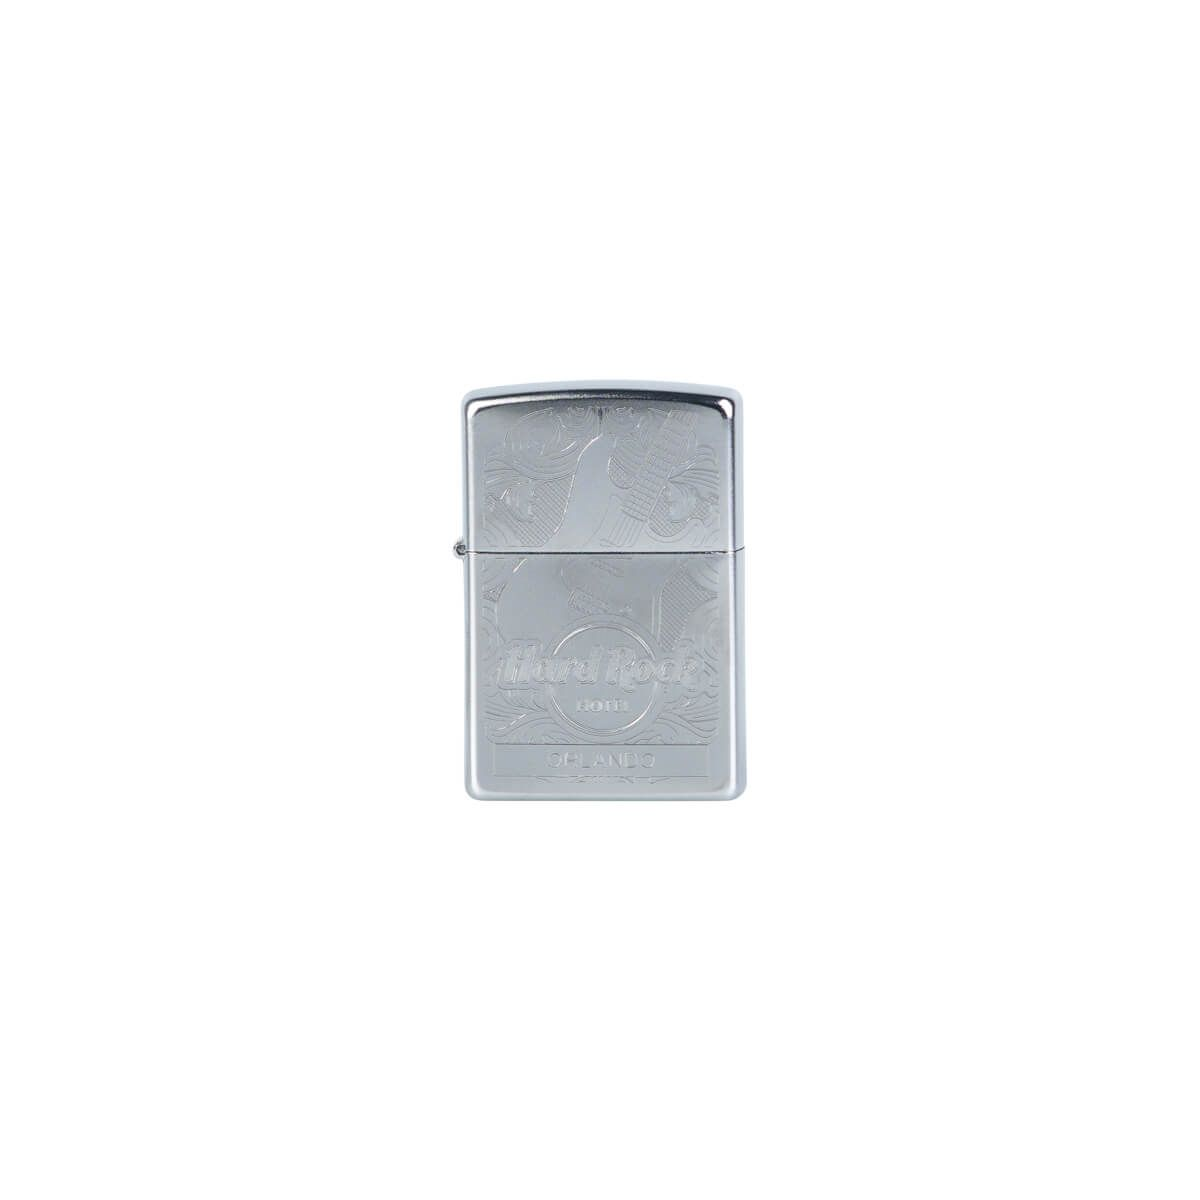 Hotel Zippo Silver Etched Guitar Lighter